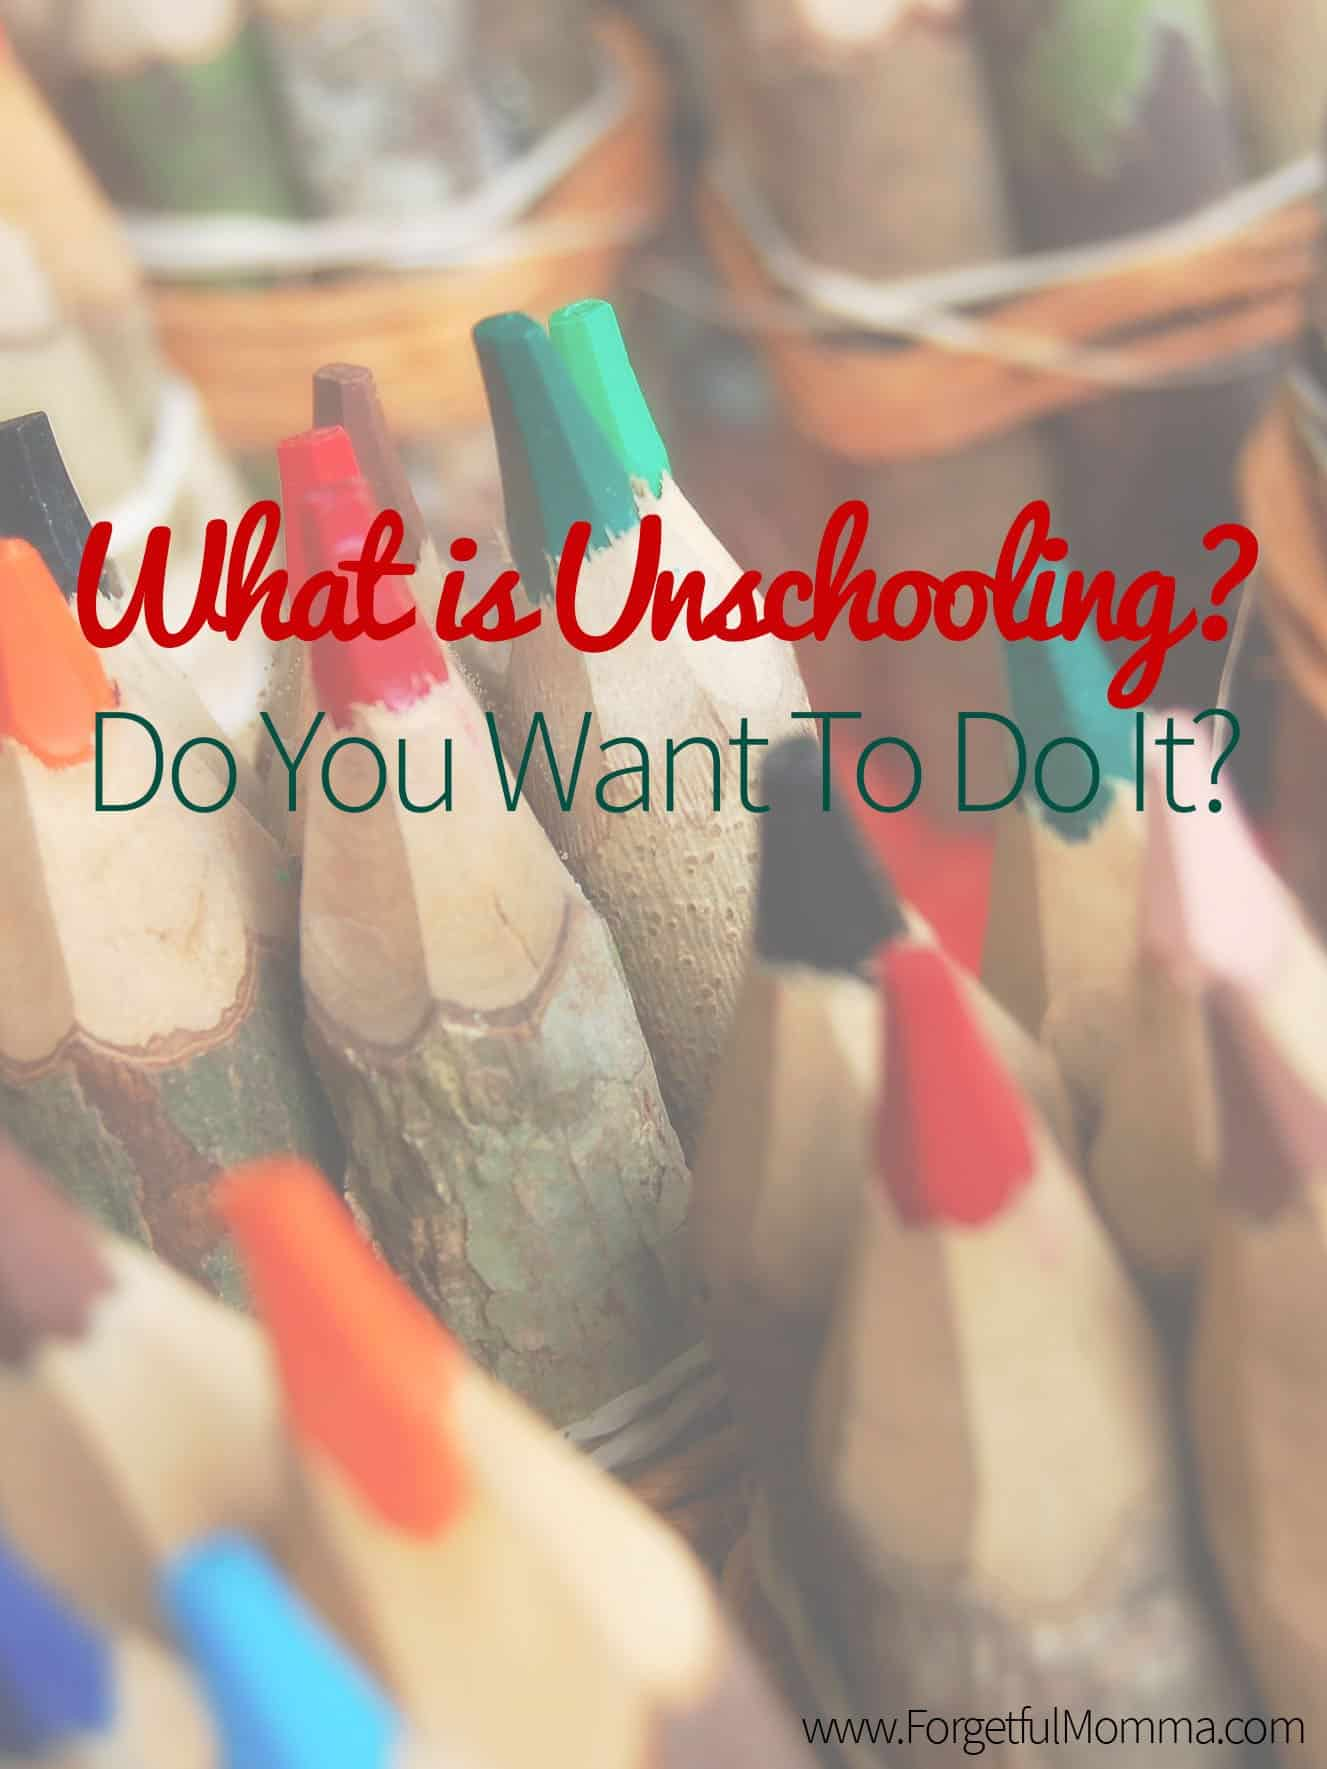 What is Unschooling